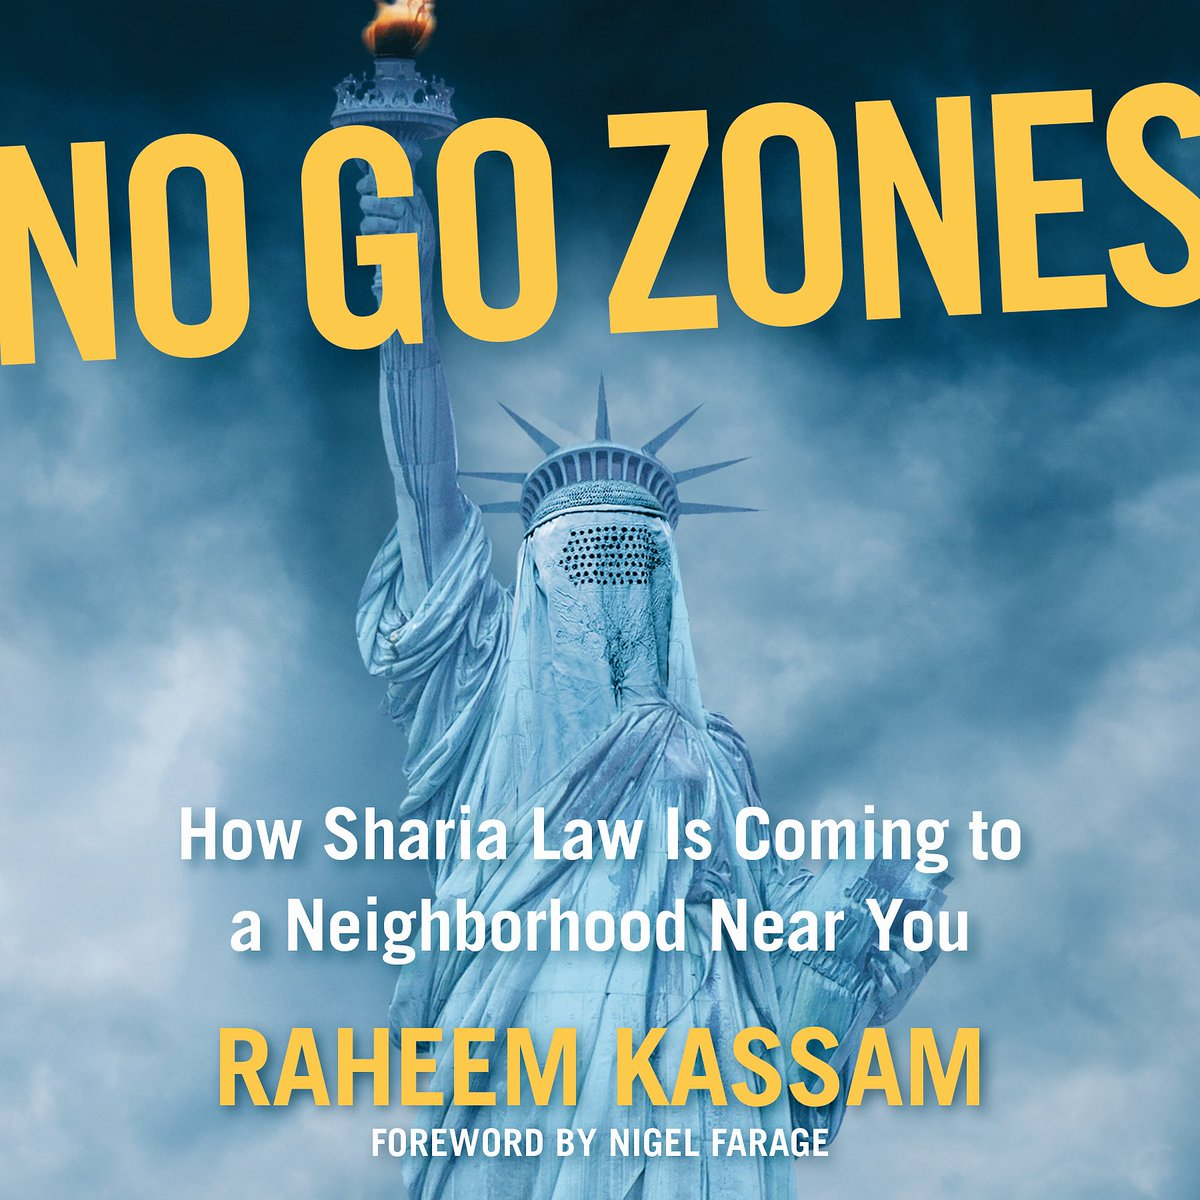 The book #Twitter  doesn&#39;t want you to read: #NoGoZones  Order now to receive on launch!  https://www. amazon.com/No-Go-Zones-Sh aria-Neighborhood/dp/1621576809/ref=tmm_hrd_swatch_0?_encoding=UTF8&amp;qid=&amp;sr= &nbsp; …   #books #islam #europe #usa <br>http://pic.twitter.com/85BIAWStgP